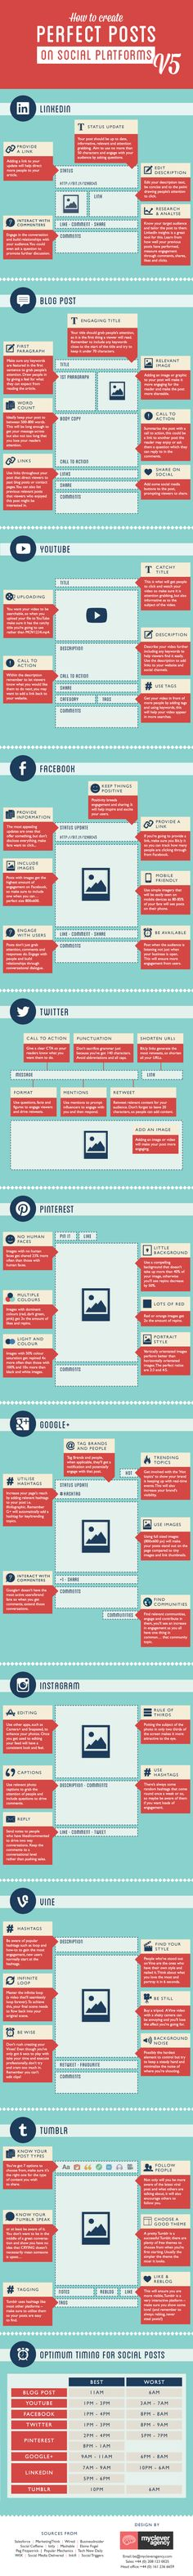 How To Create Perfect Posts on Facebook, GooglePlus, Twitter, Instagram, Pinterest, LinkedIn, YouTube, Tumblr, Vine : Version 5 #infographic #socialmedia #SMM